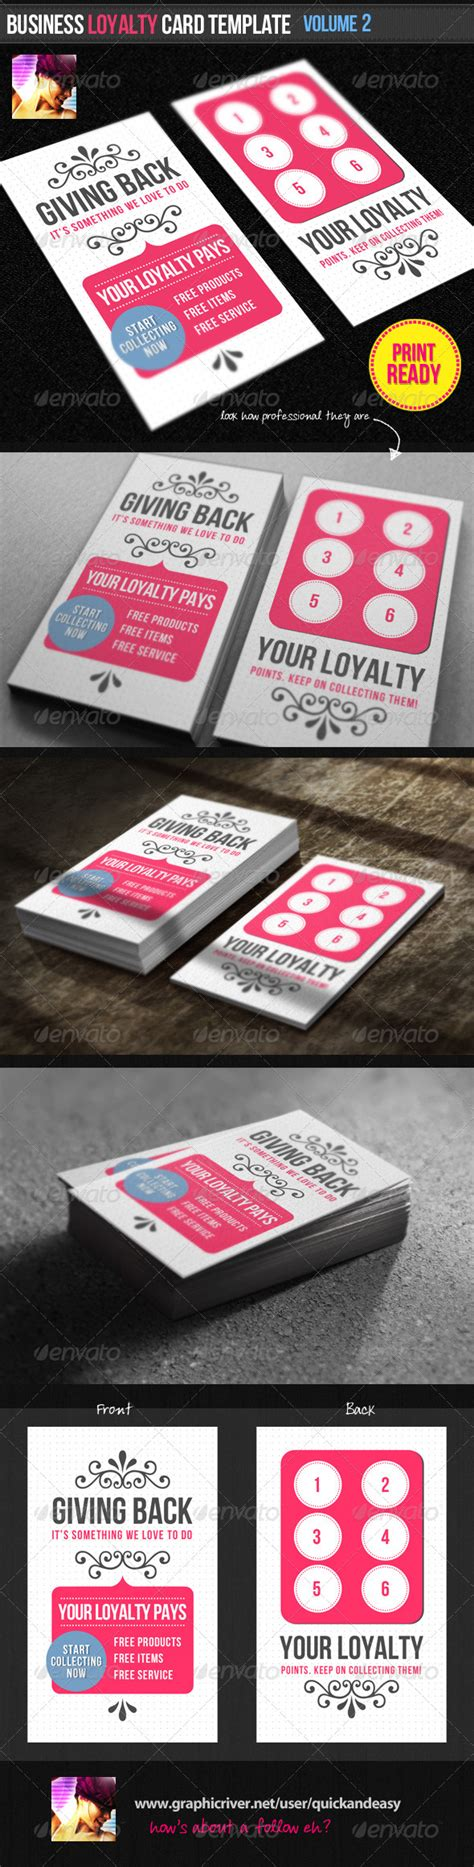 business loyalty cards templates business loyalty card template vol 2 by quickandeasy